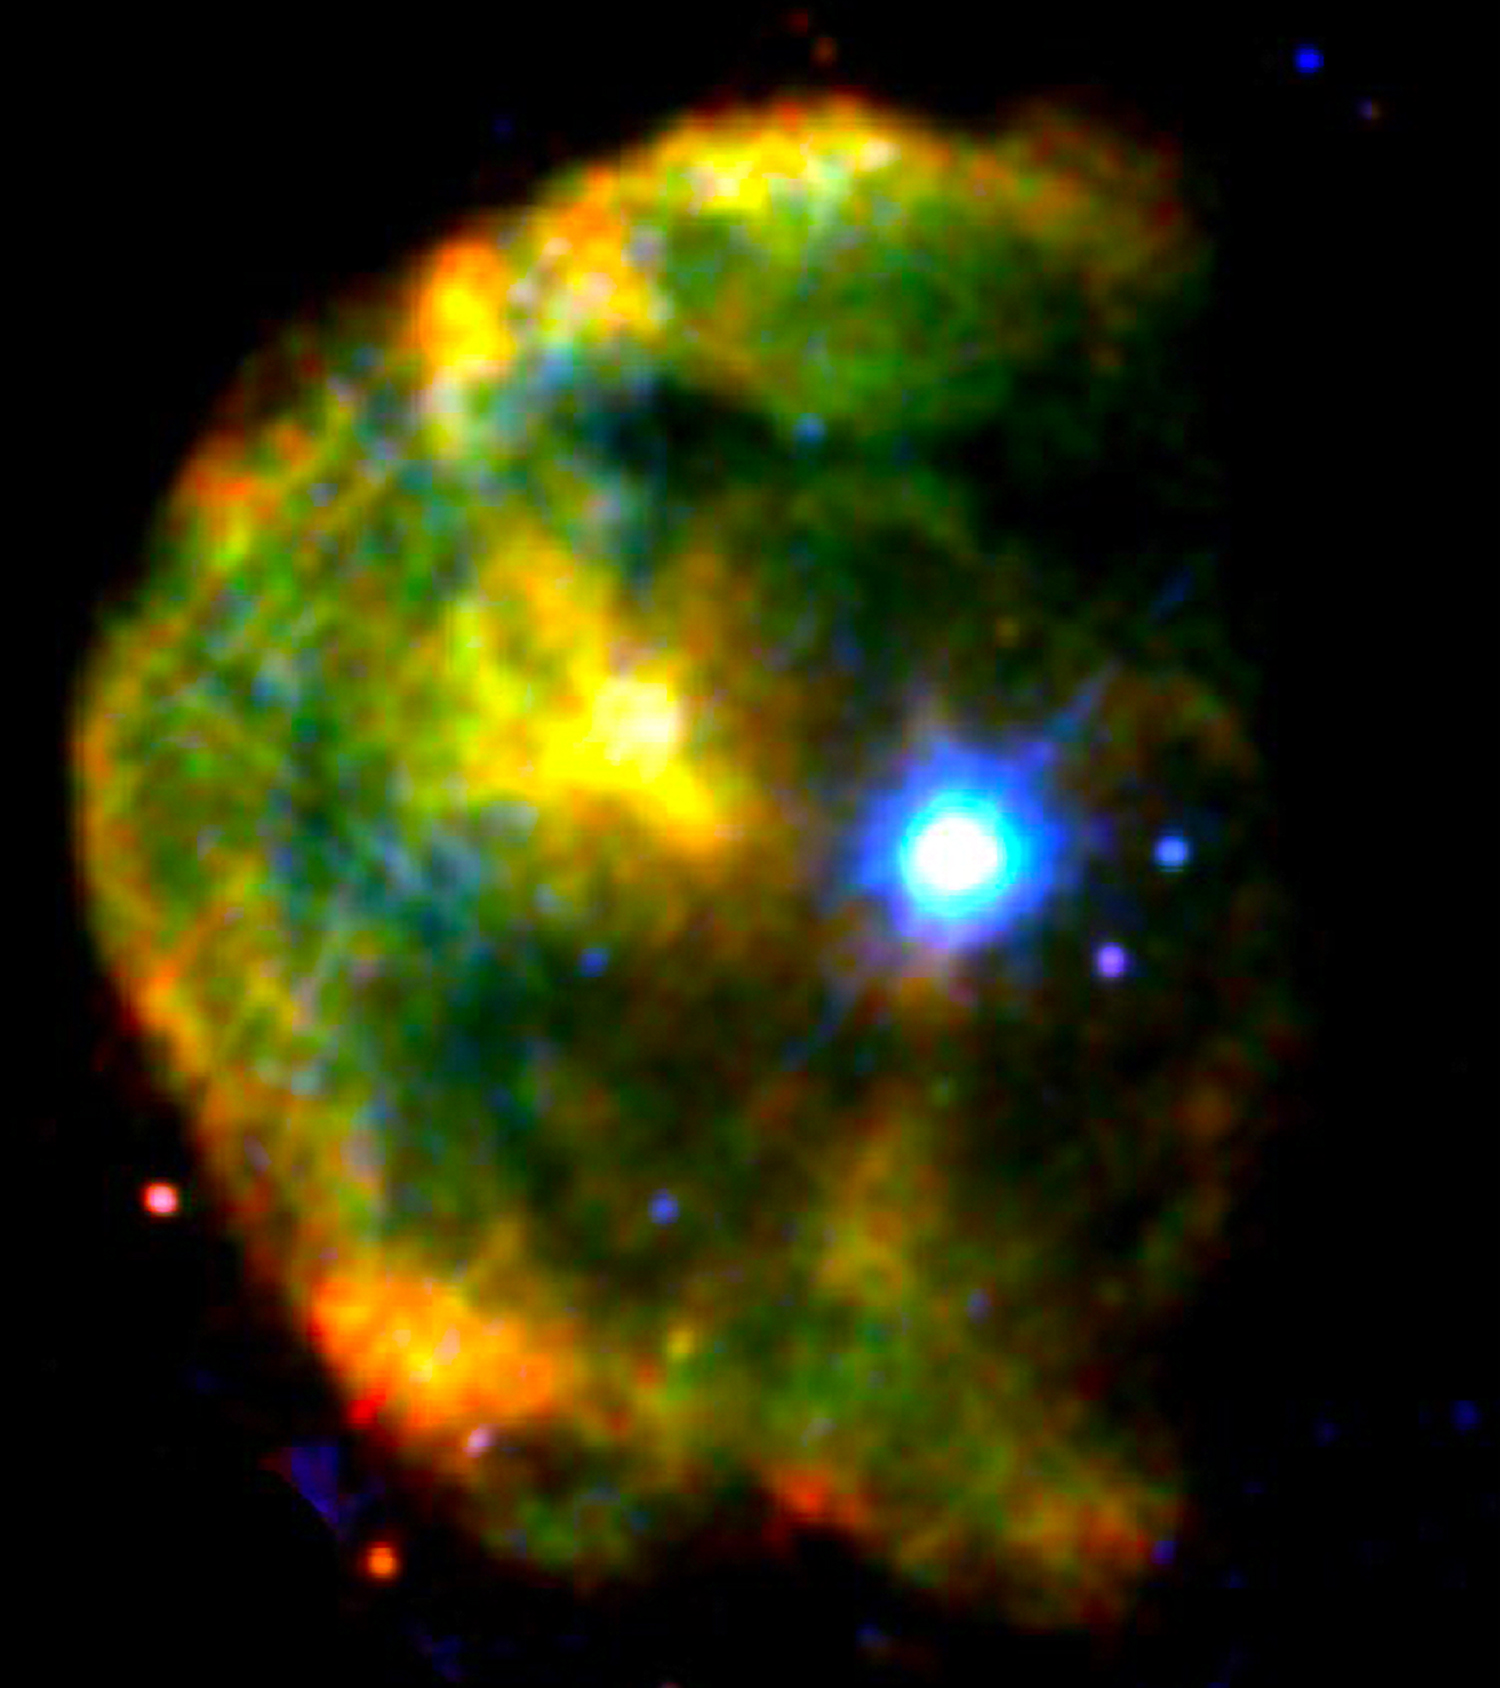 neutron star nasa - photo #13